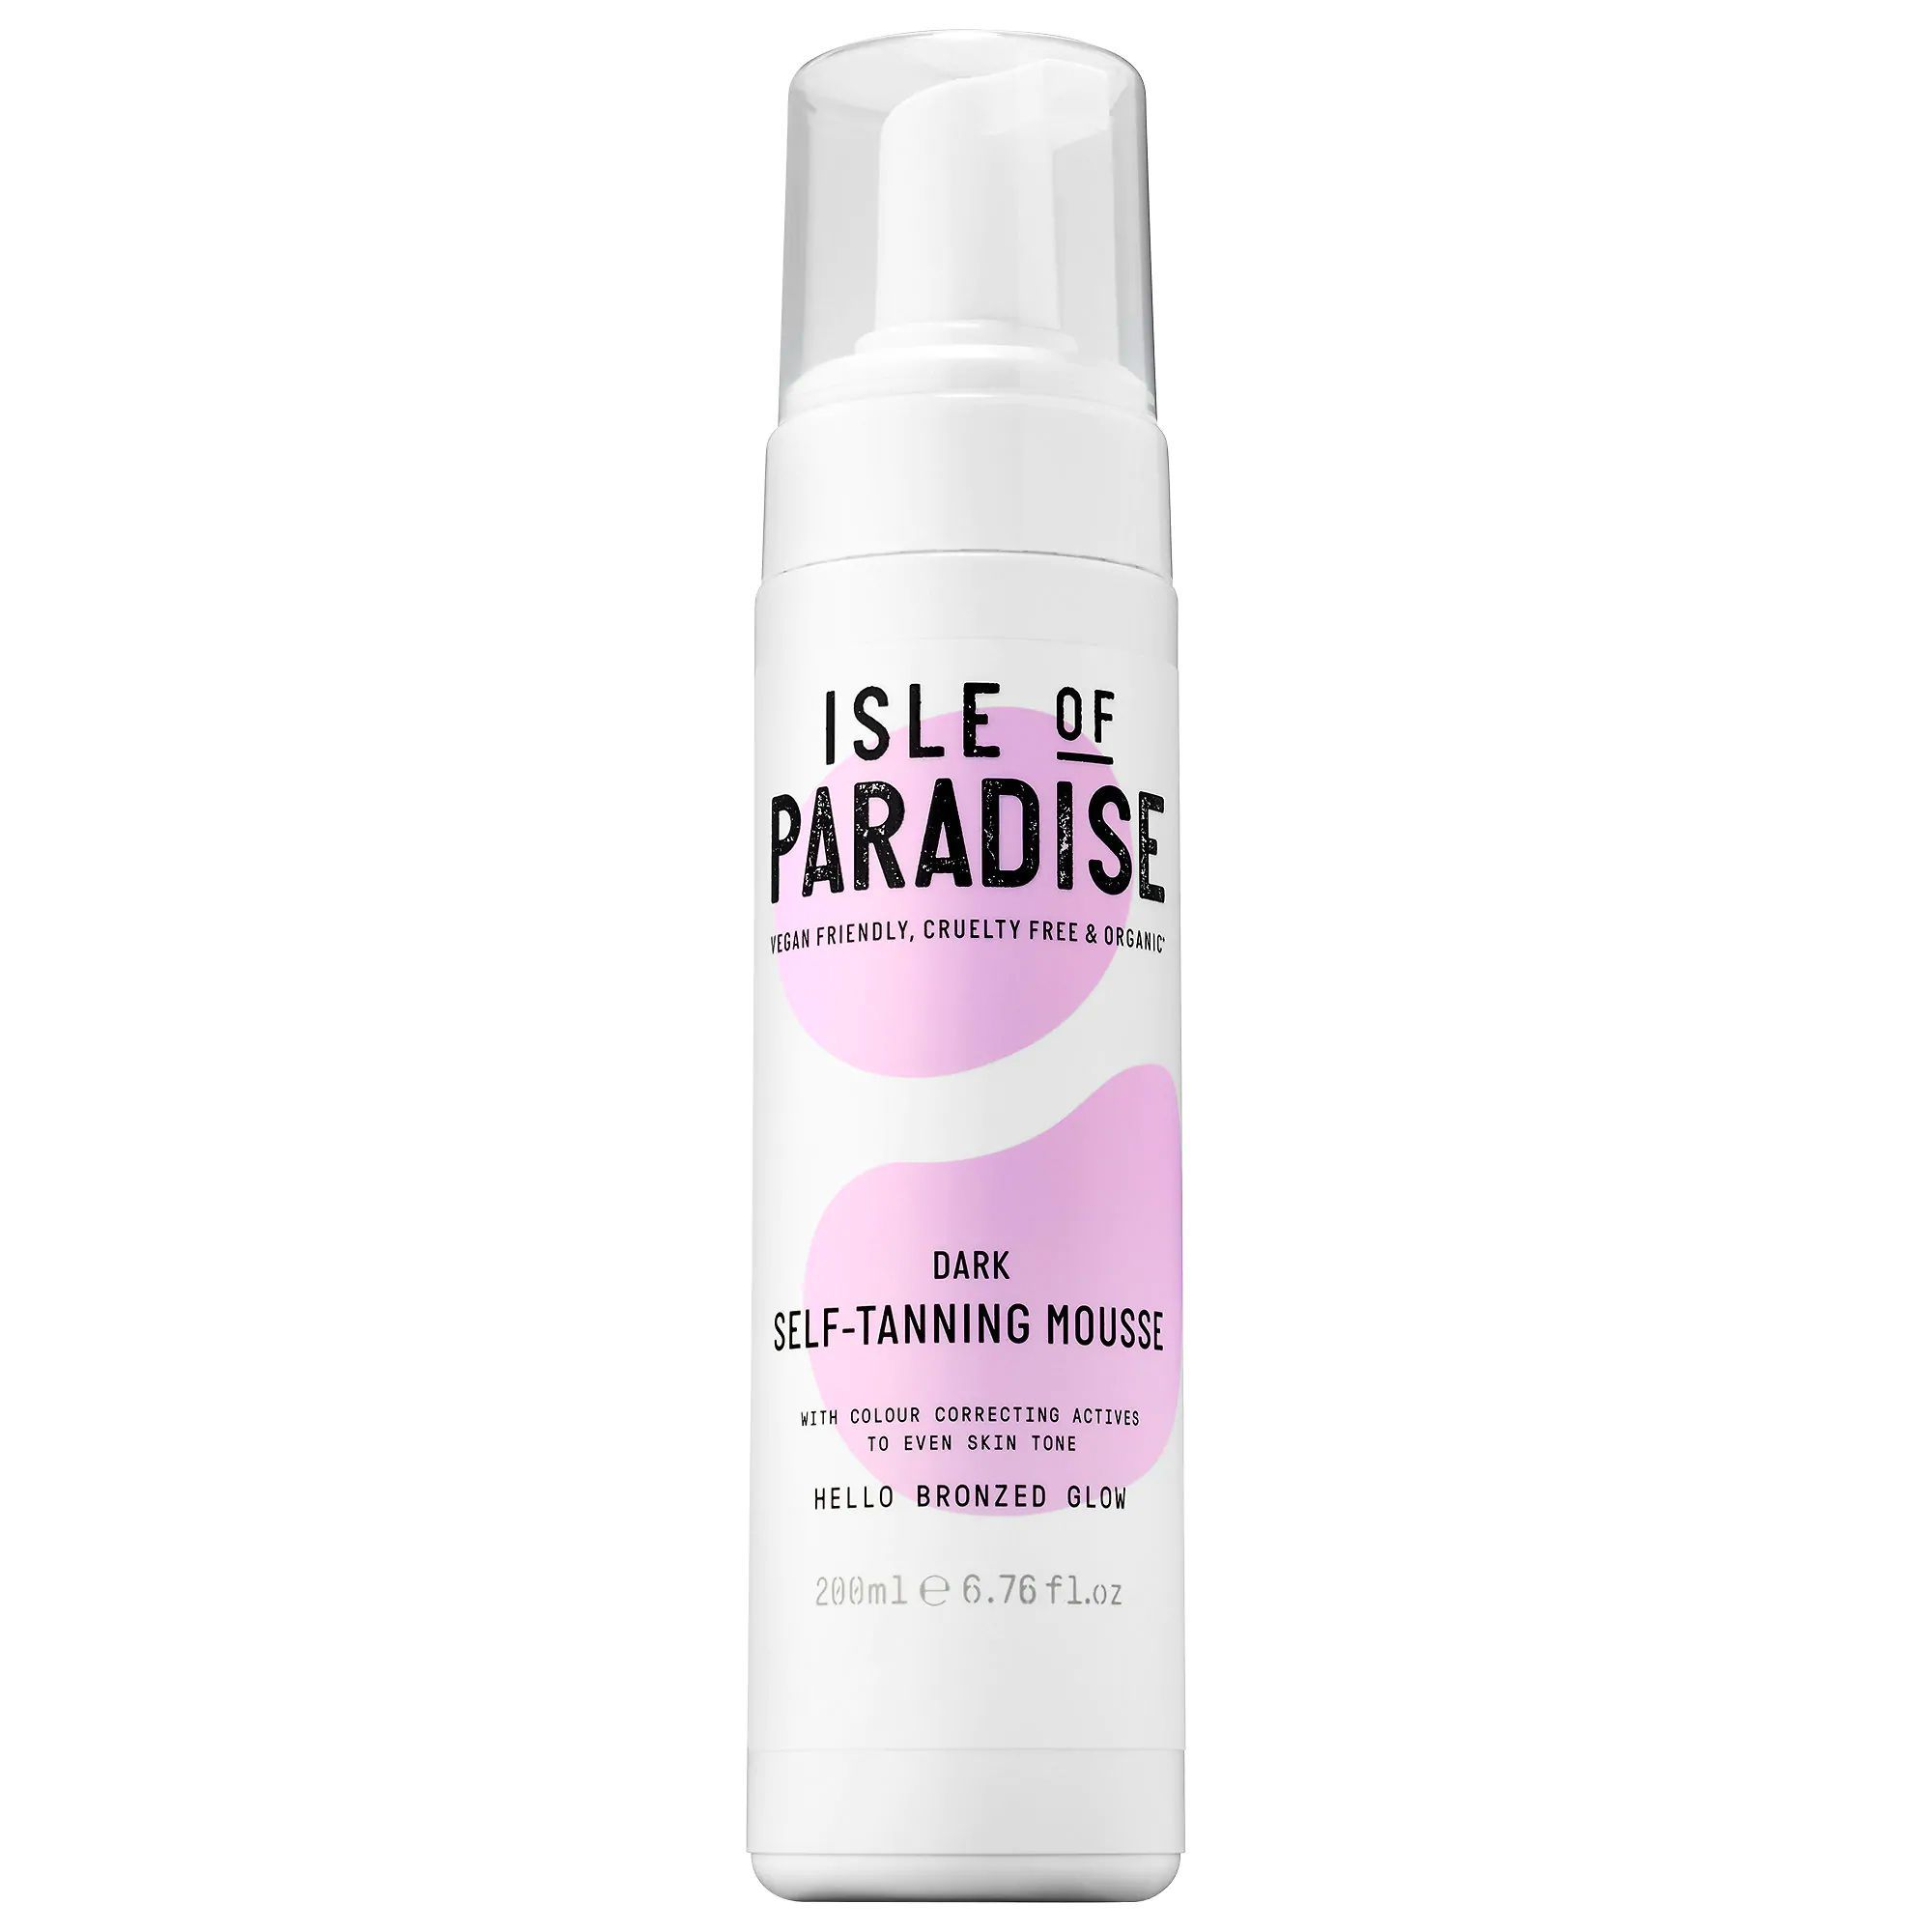 The Color-Corrector Self-Tanning Mousse Isle of Paradise sephora.com $29.00 SHOP NOW This unique line of self-tanning mousse doubles as a color-corrector for your whole body. Its base comes in either peach (fair), green (medium), or violet (deep) to deliver a tan tailored to your skin tone.